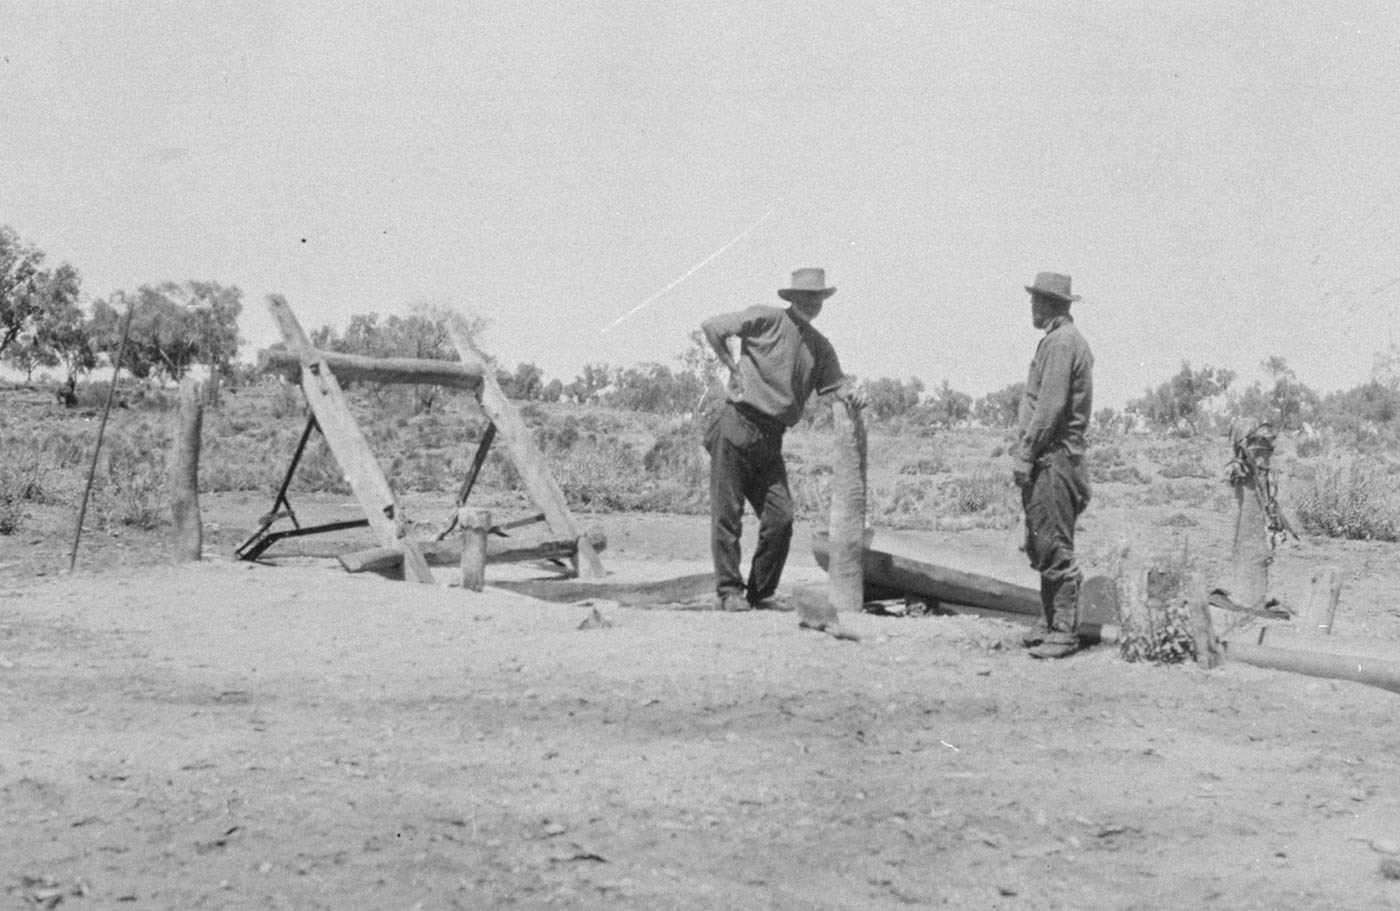 Black and white photo of two men standing in a rural setting adjacent to a wooden structure fabricated from logs.